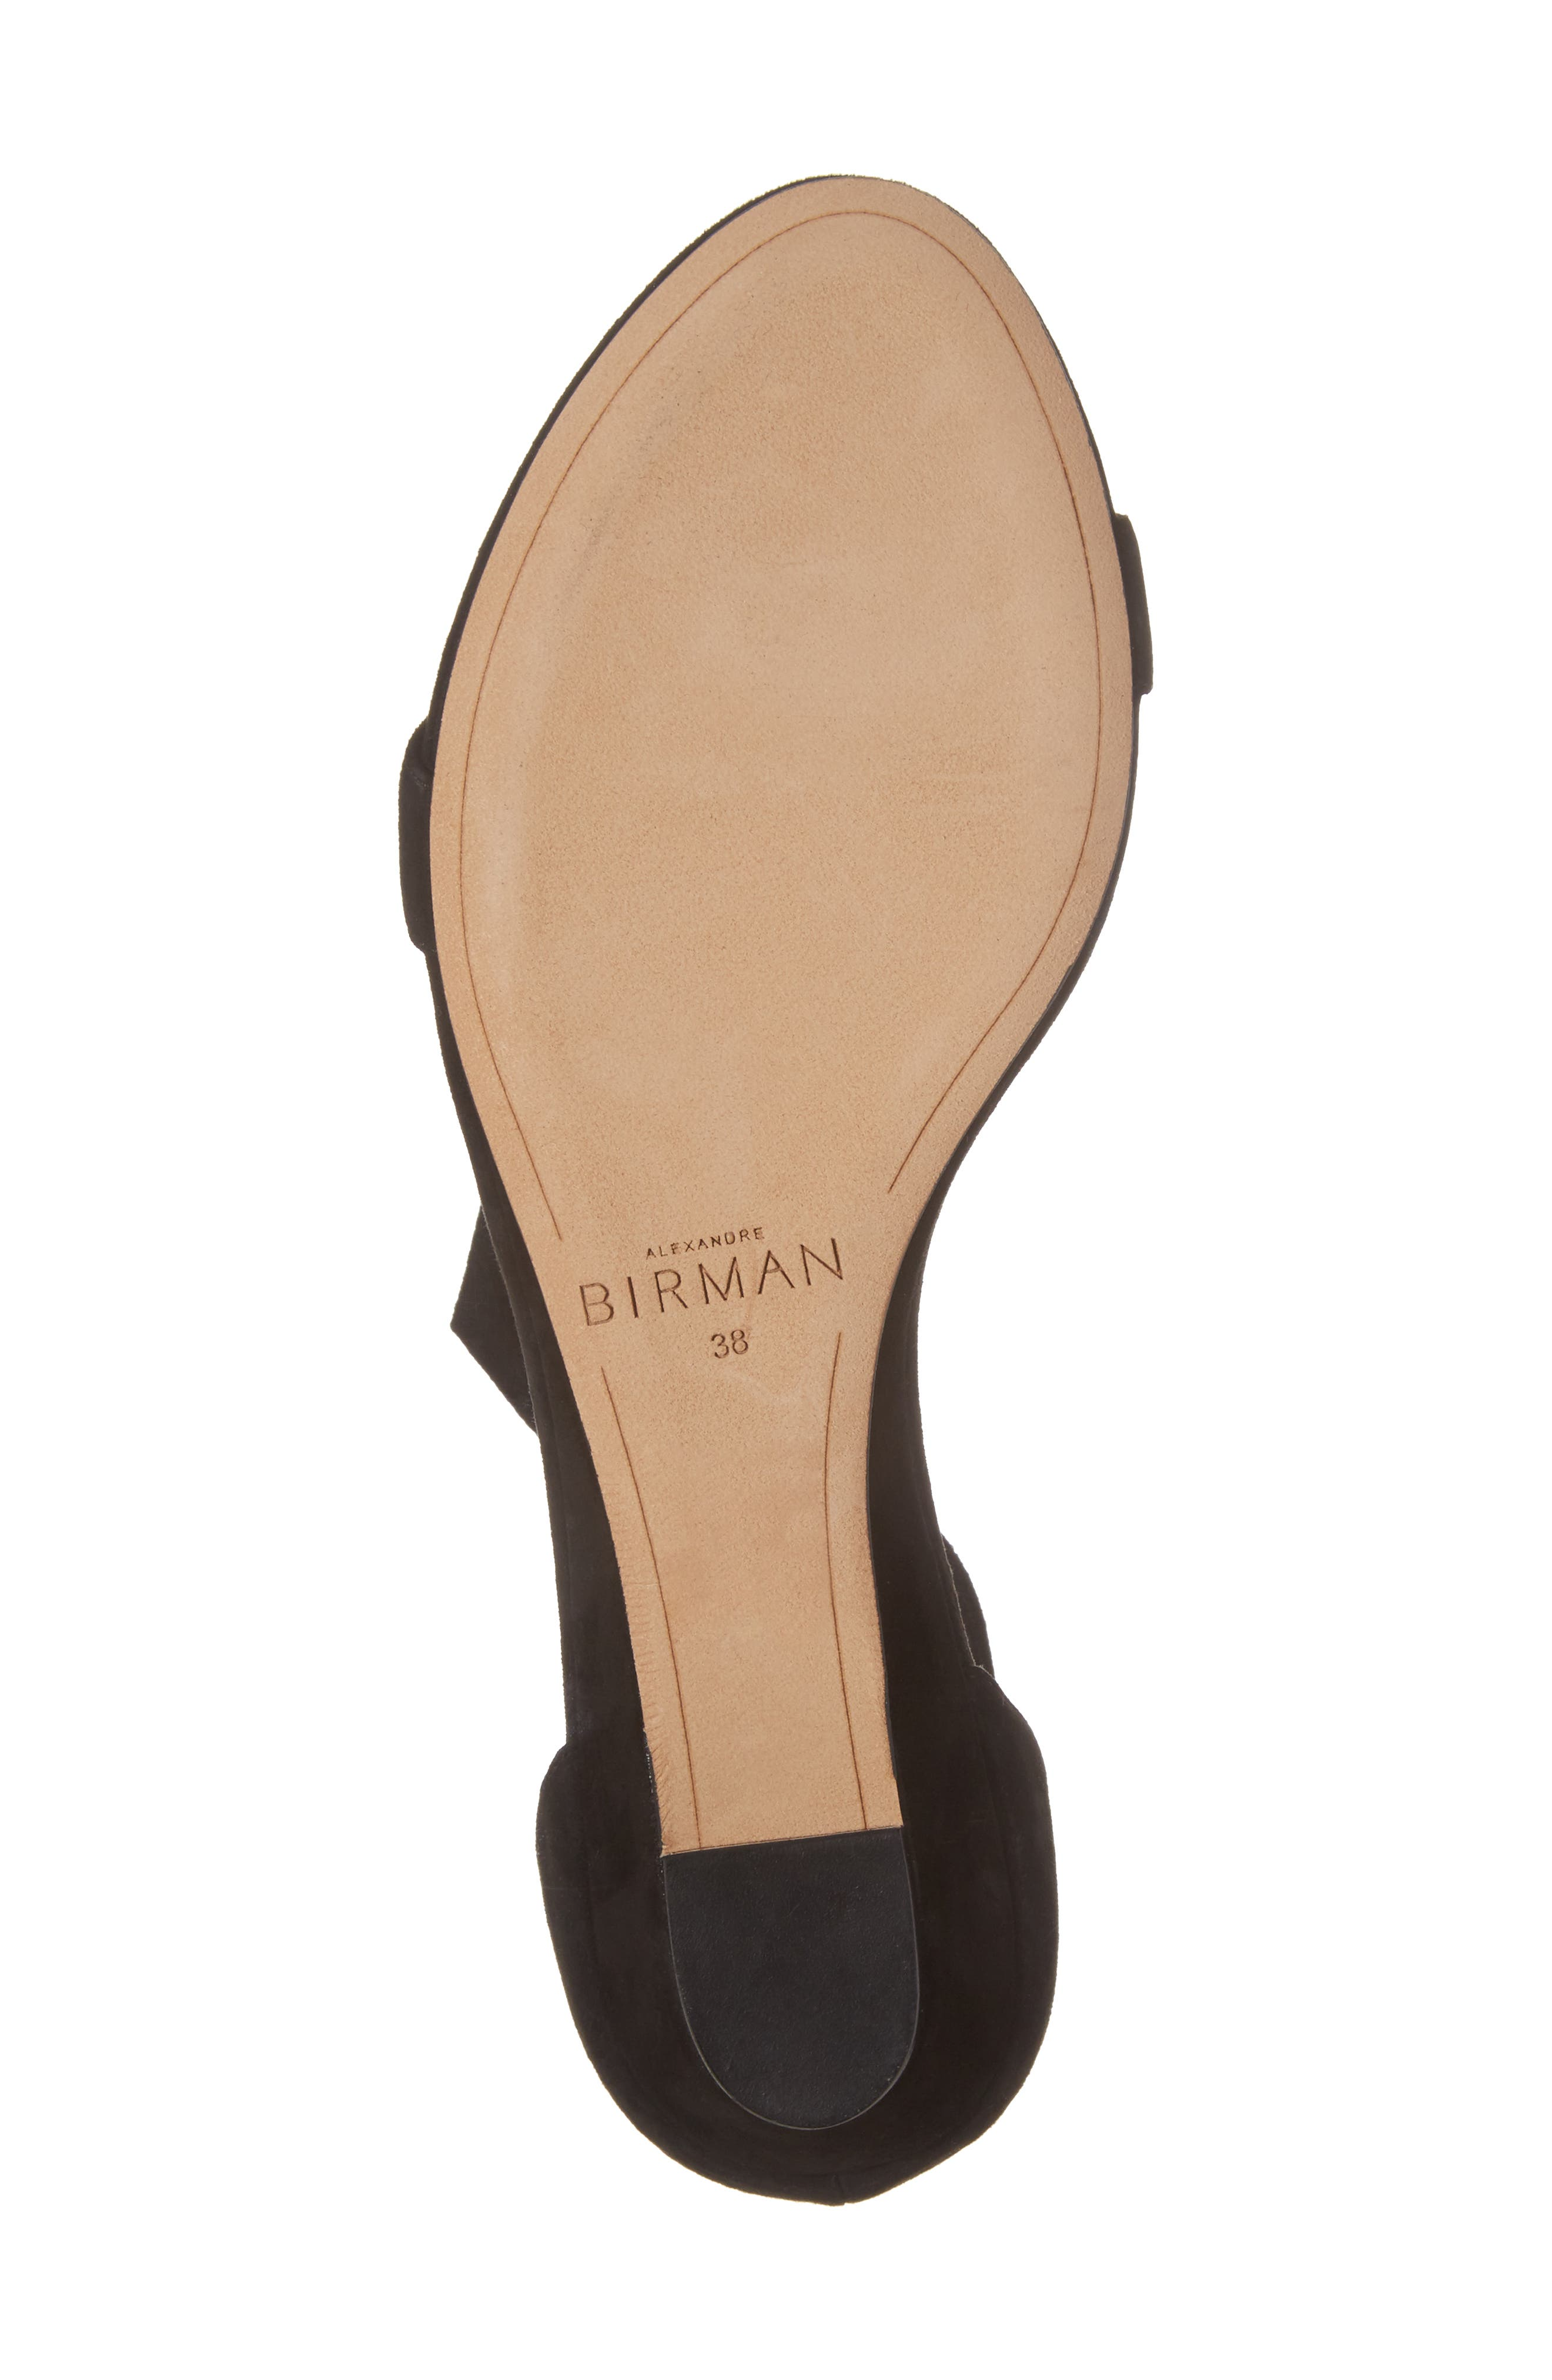 Atena Tie Strap Wedge Sandal,                             Alternate thumbnail 6, color,                             Black Suede